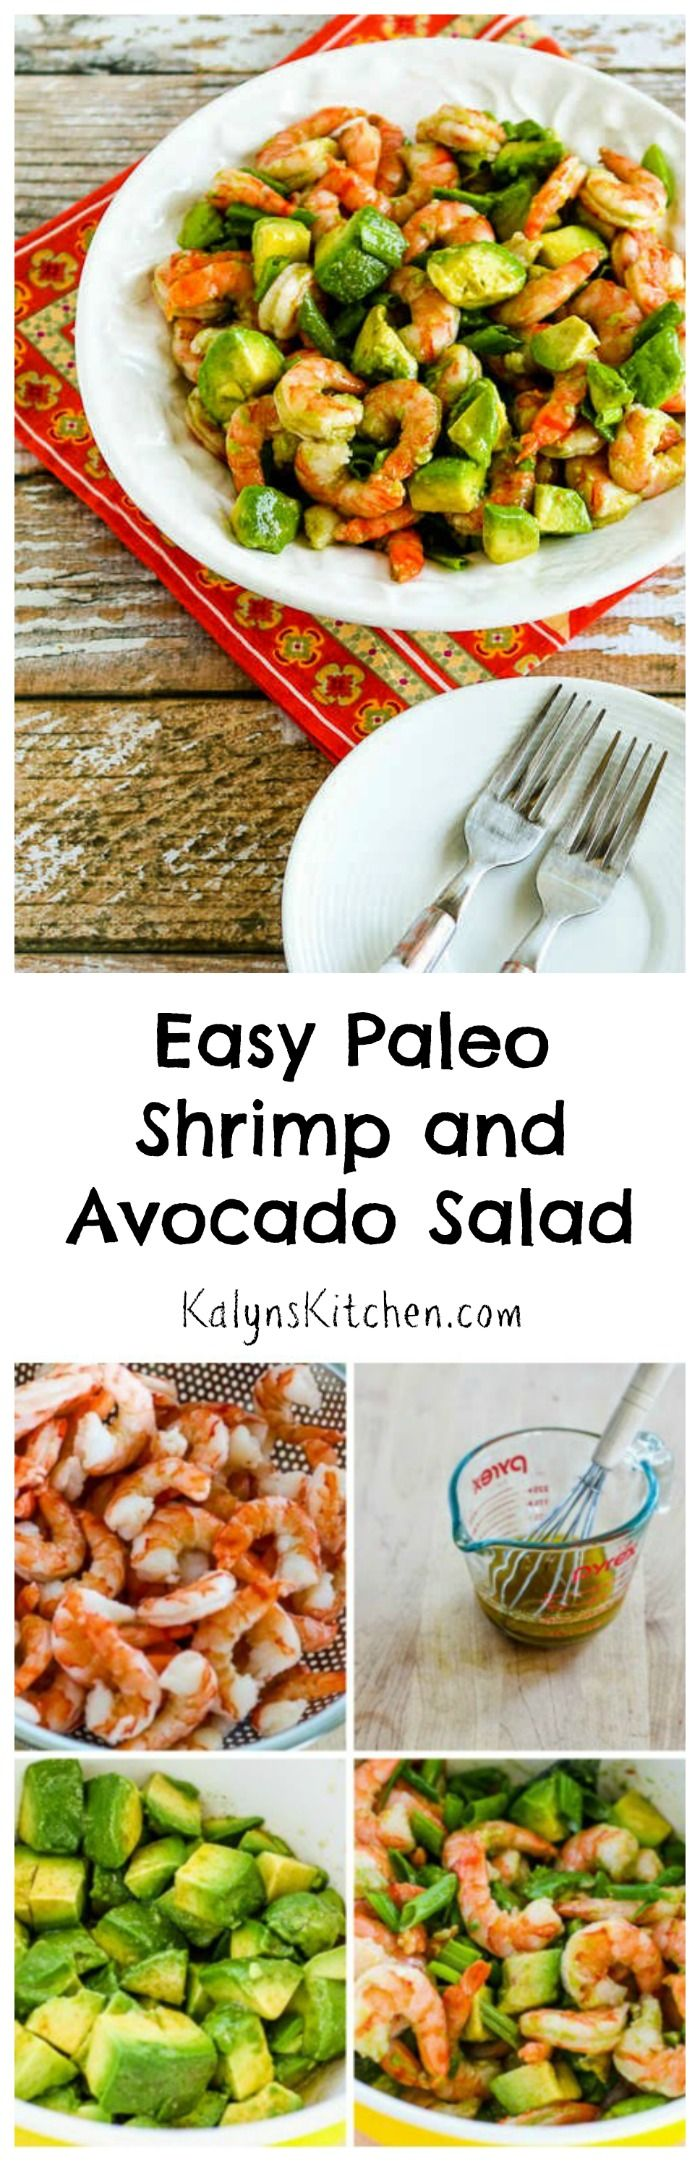 Whether or not you care about the Paleo diet, if you like shrimp and avocados I promise you'll love this Easy Paleo Shrimp and Avocado Salad. It's perfect for spring or summer and easy enough to make for a quick lunch. And this amazing salad is also low-carb and gluten-free. [from KalynsKitchen.com]